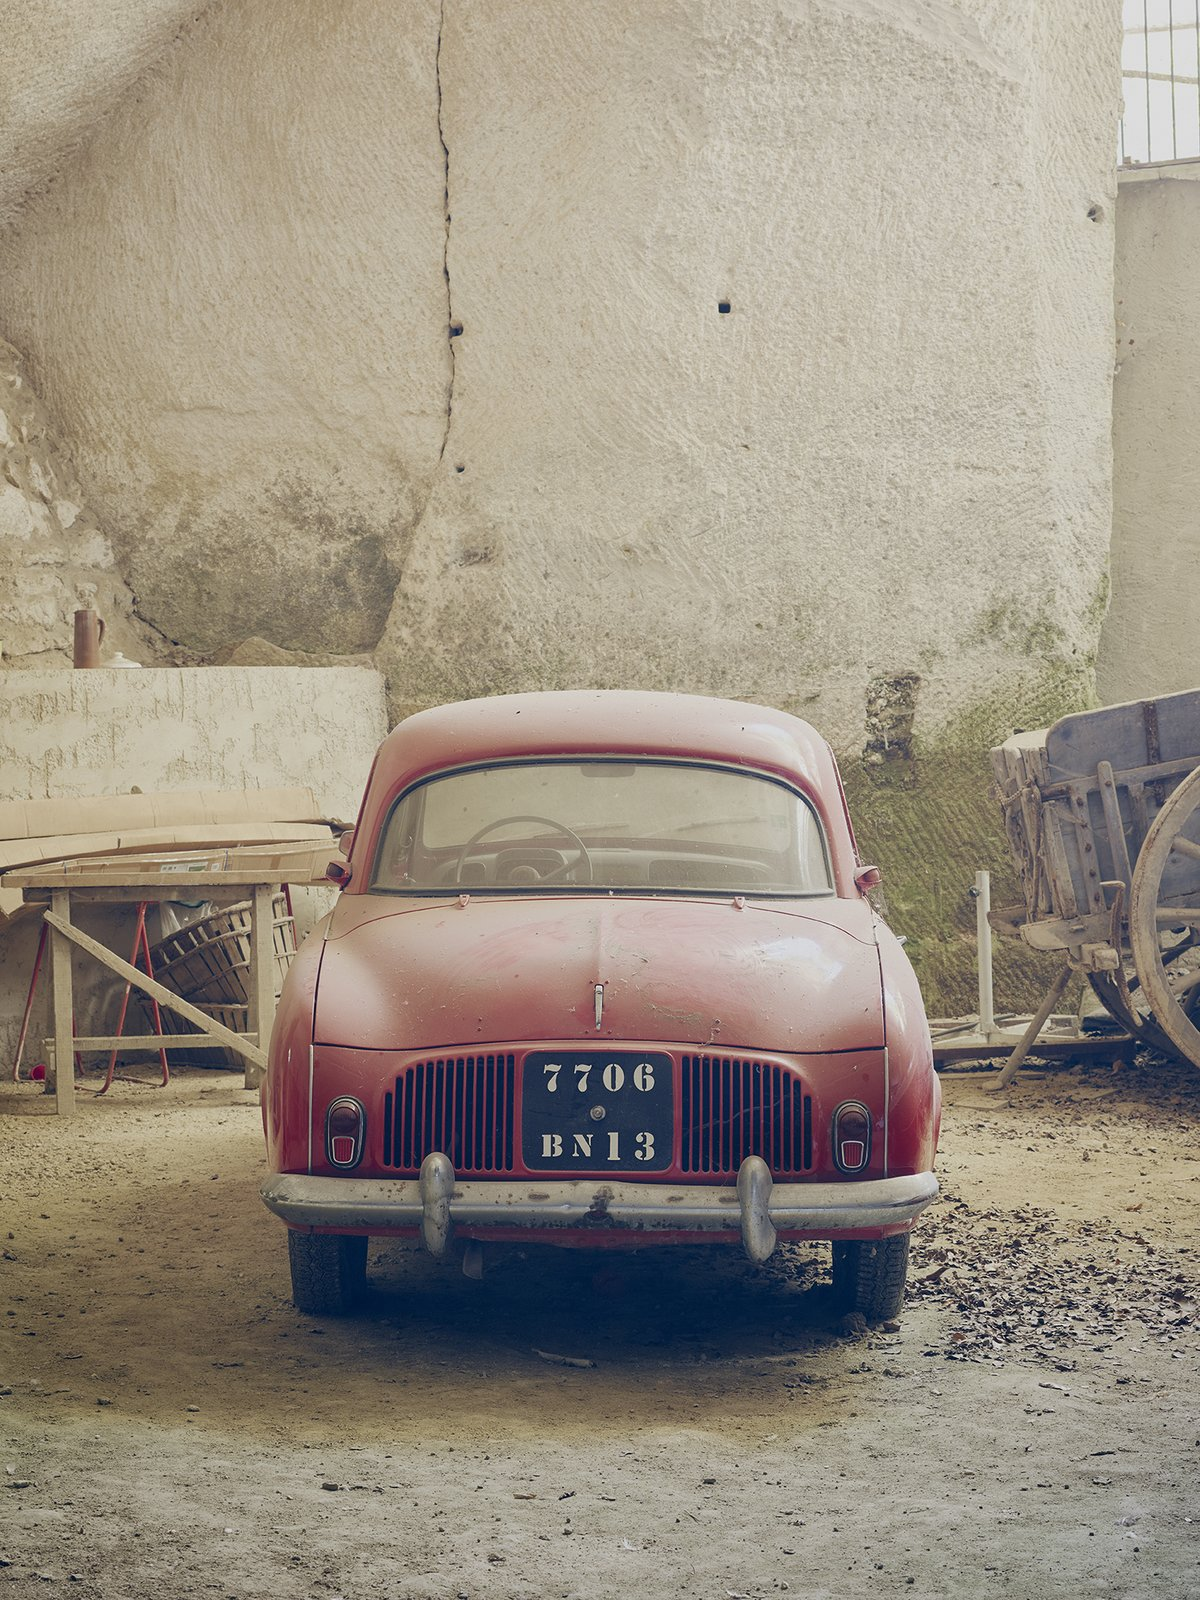 The crown jewel is Lolo's collection of more than half a dozen classic cars, not related to farming.